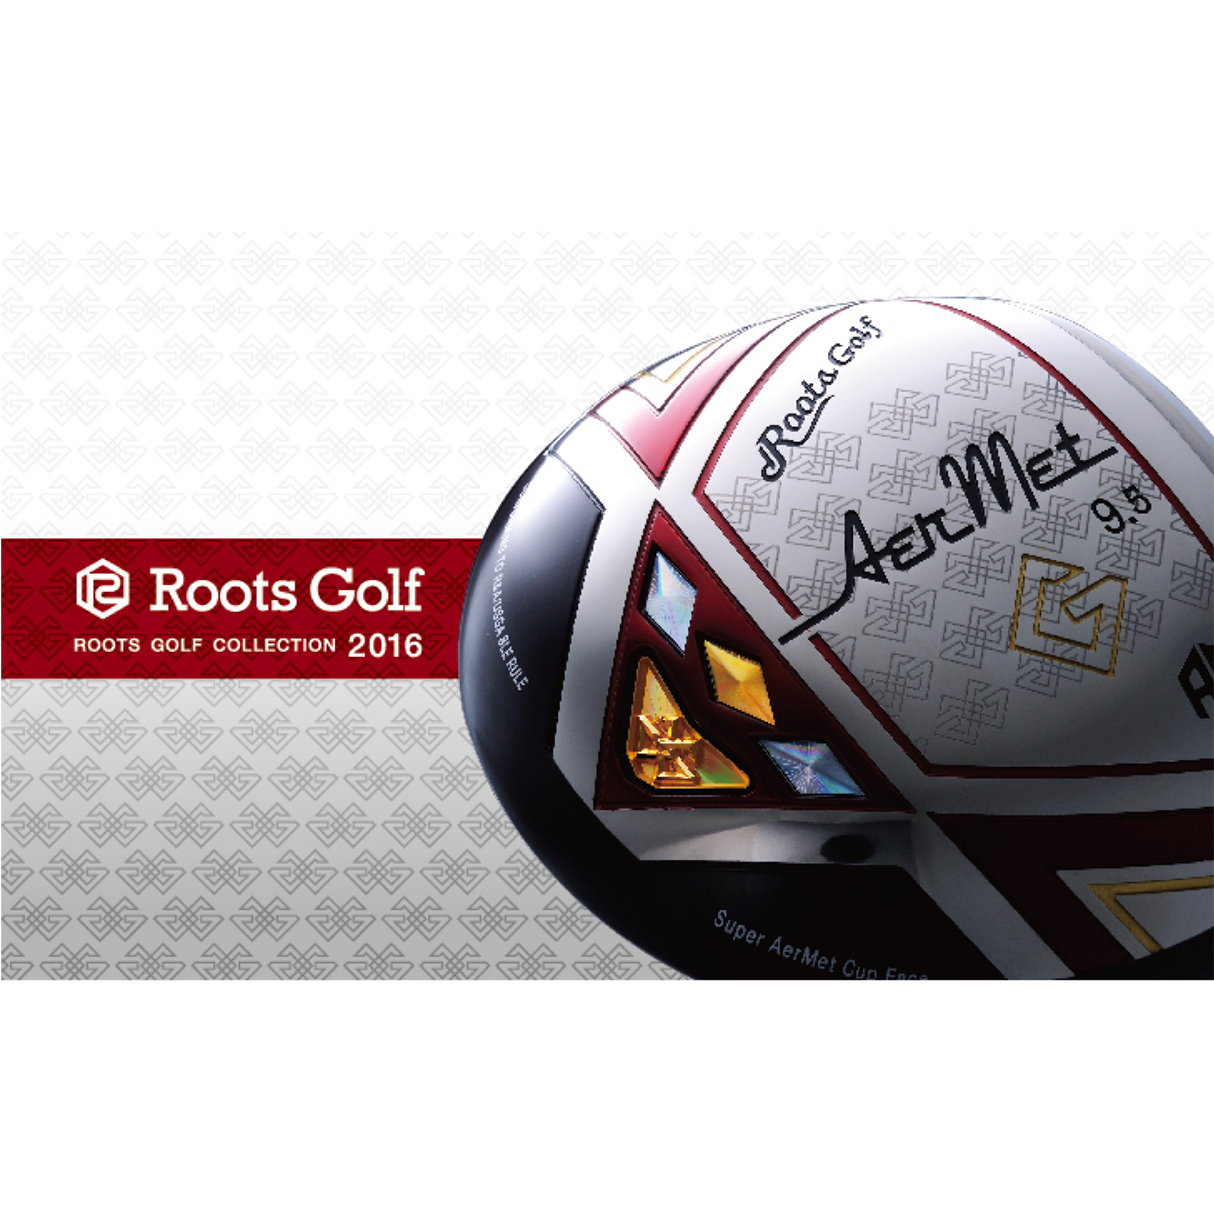 2016 Roots Golf カタログデザイン